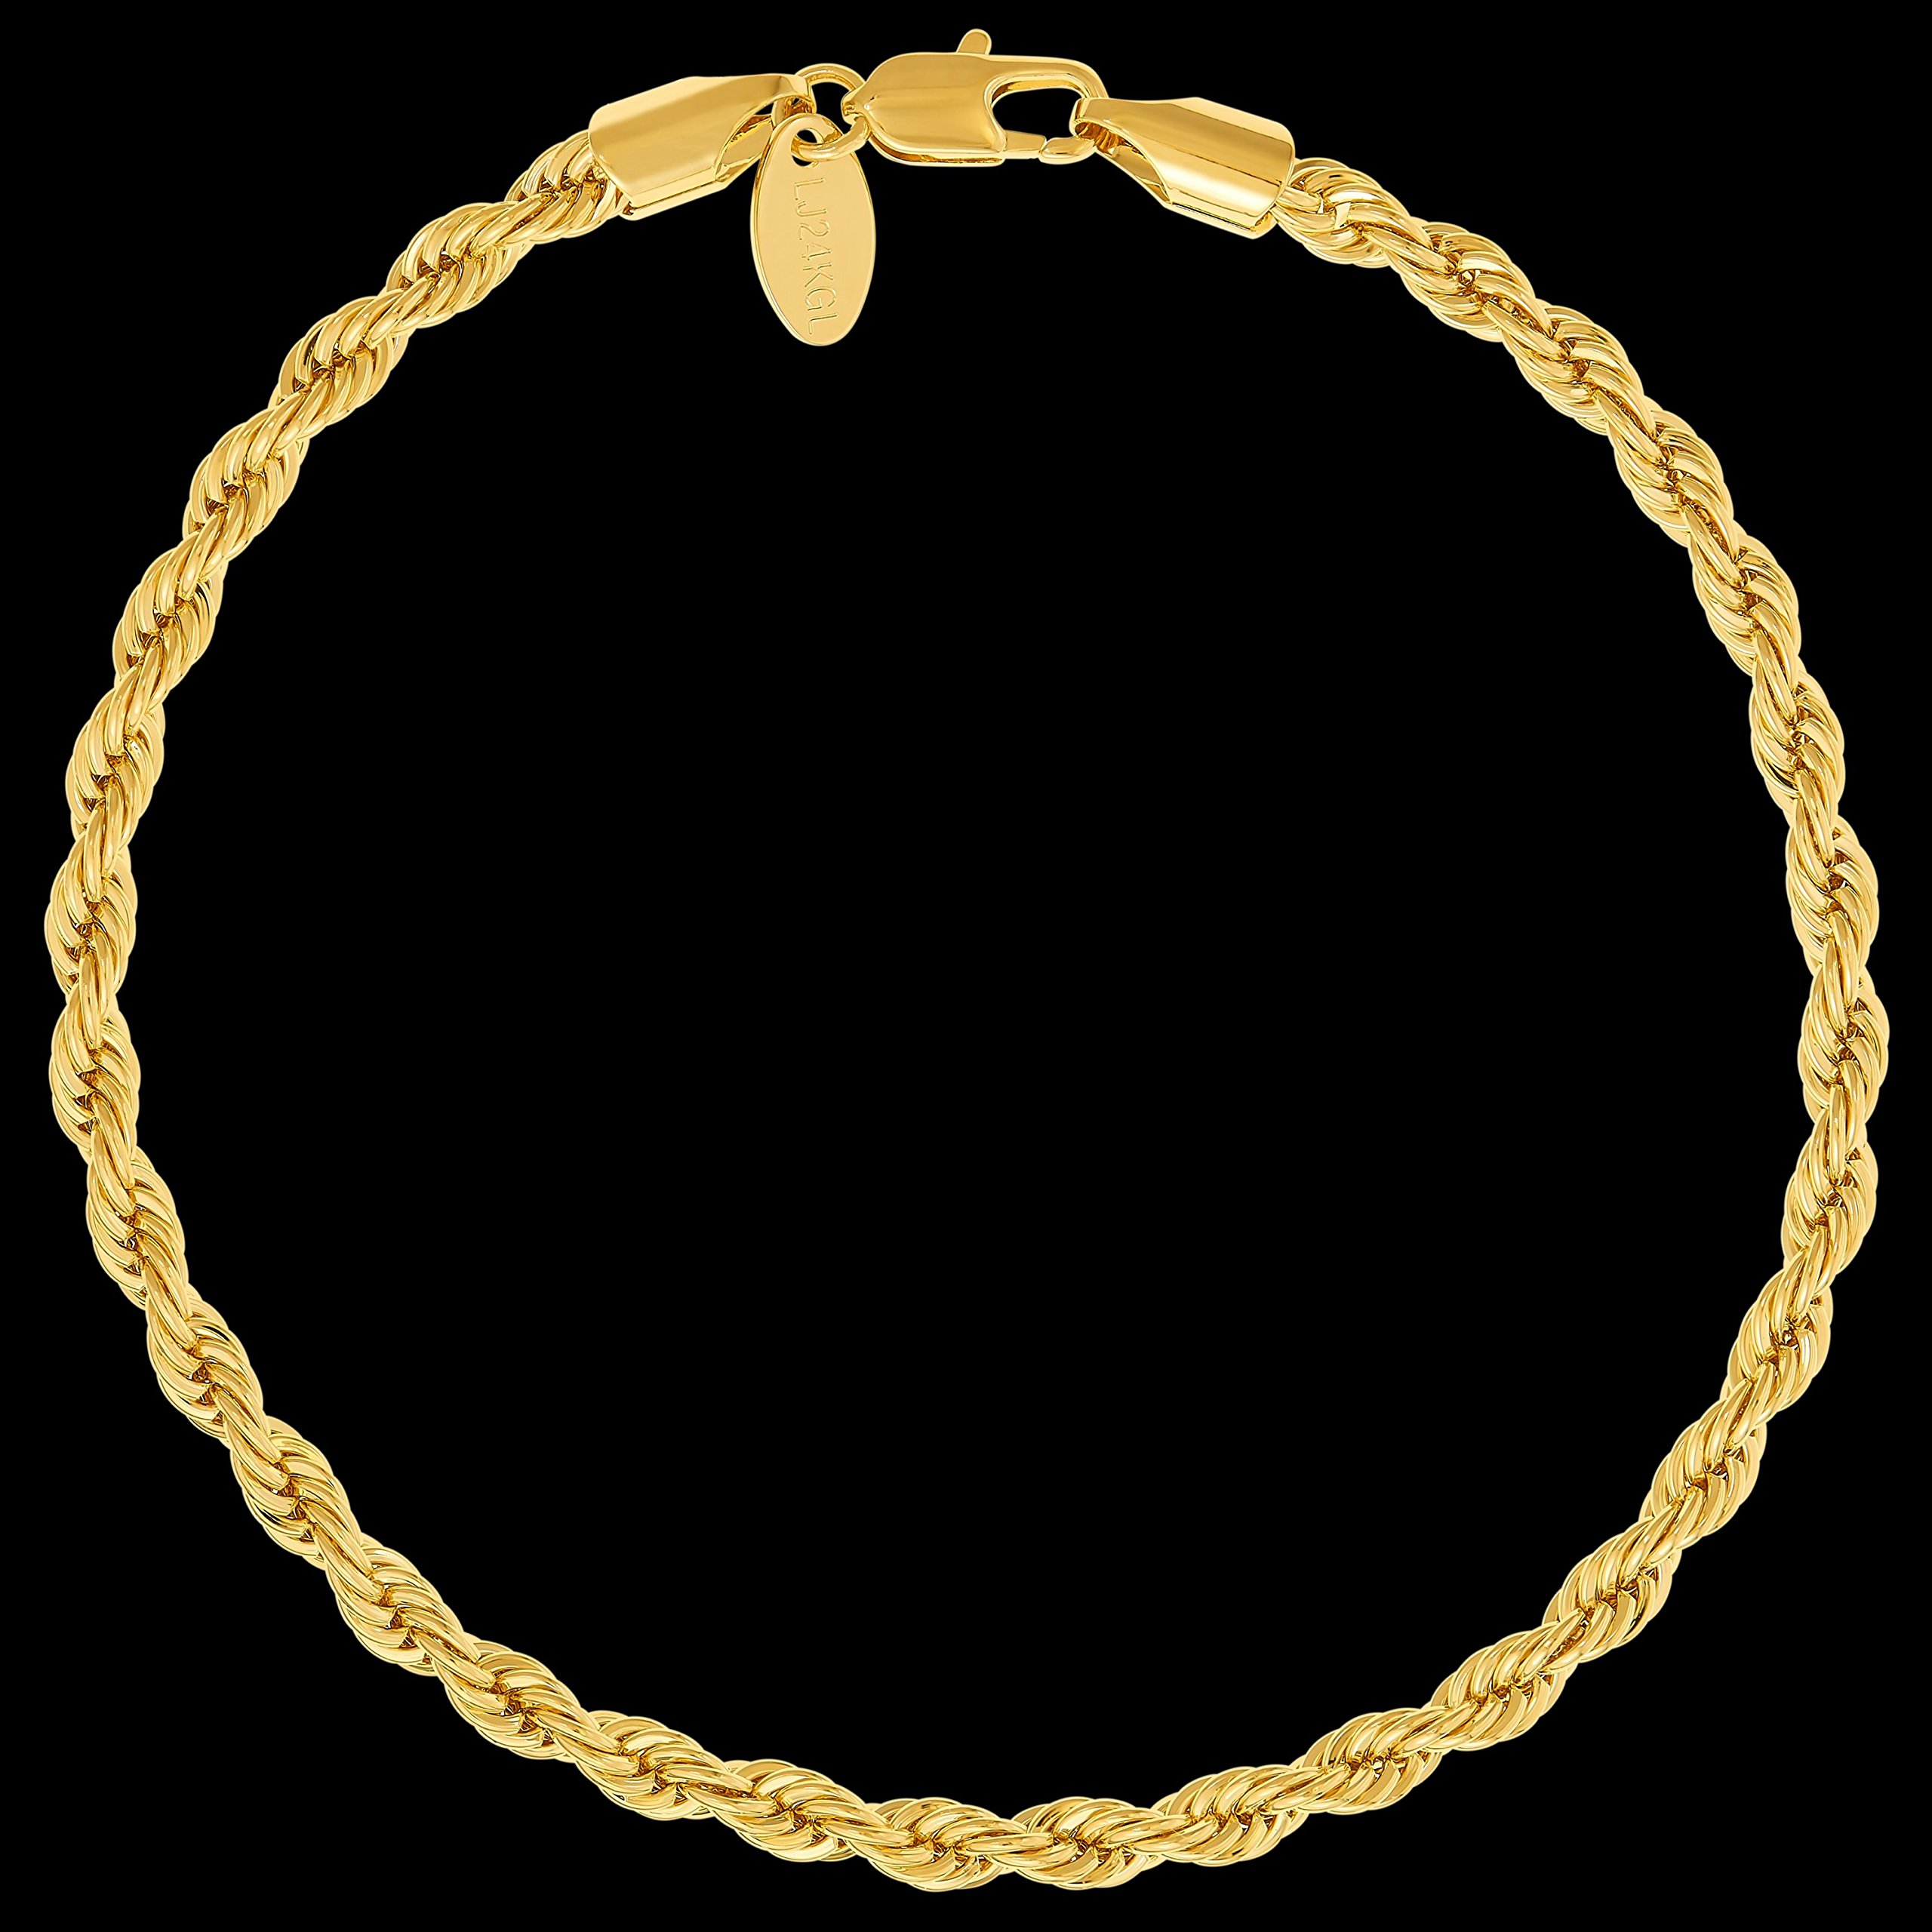 Lifetime Jewelry Rope Bracelet 5MM, Round, 24K Gold with Inlaid Bronze, Premium Fashion Jewelry, Guaranteed for Life, 8 Inches by Lifetime Jewelry (Image #6)